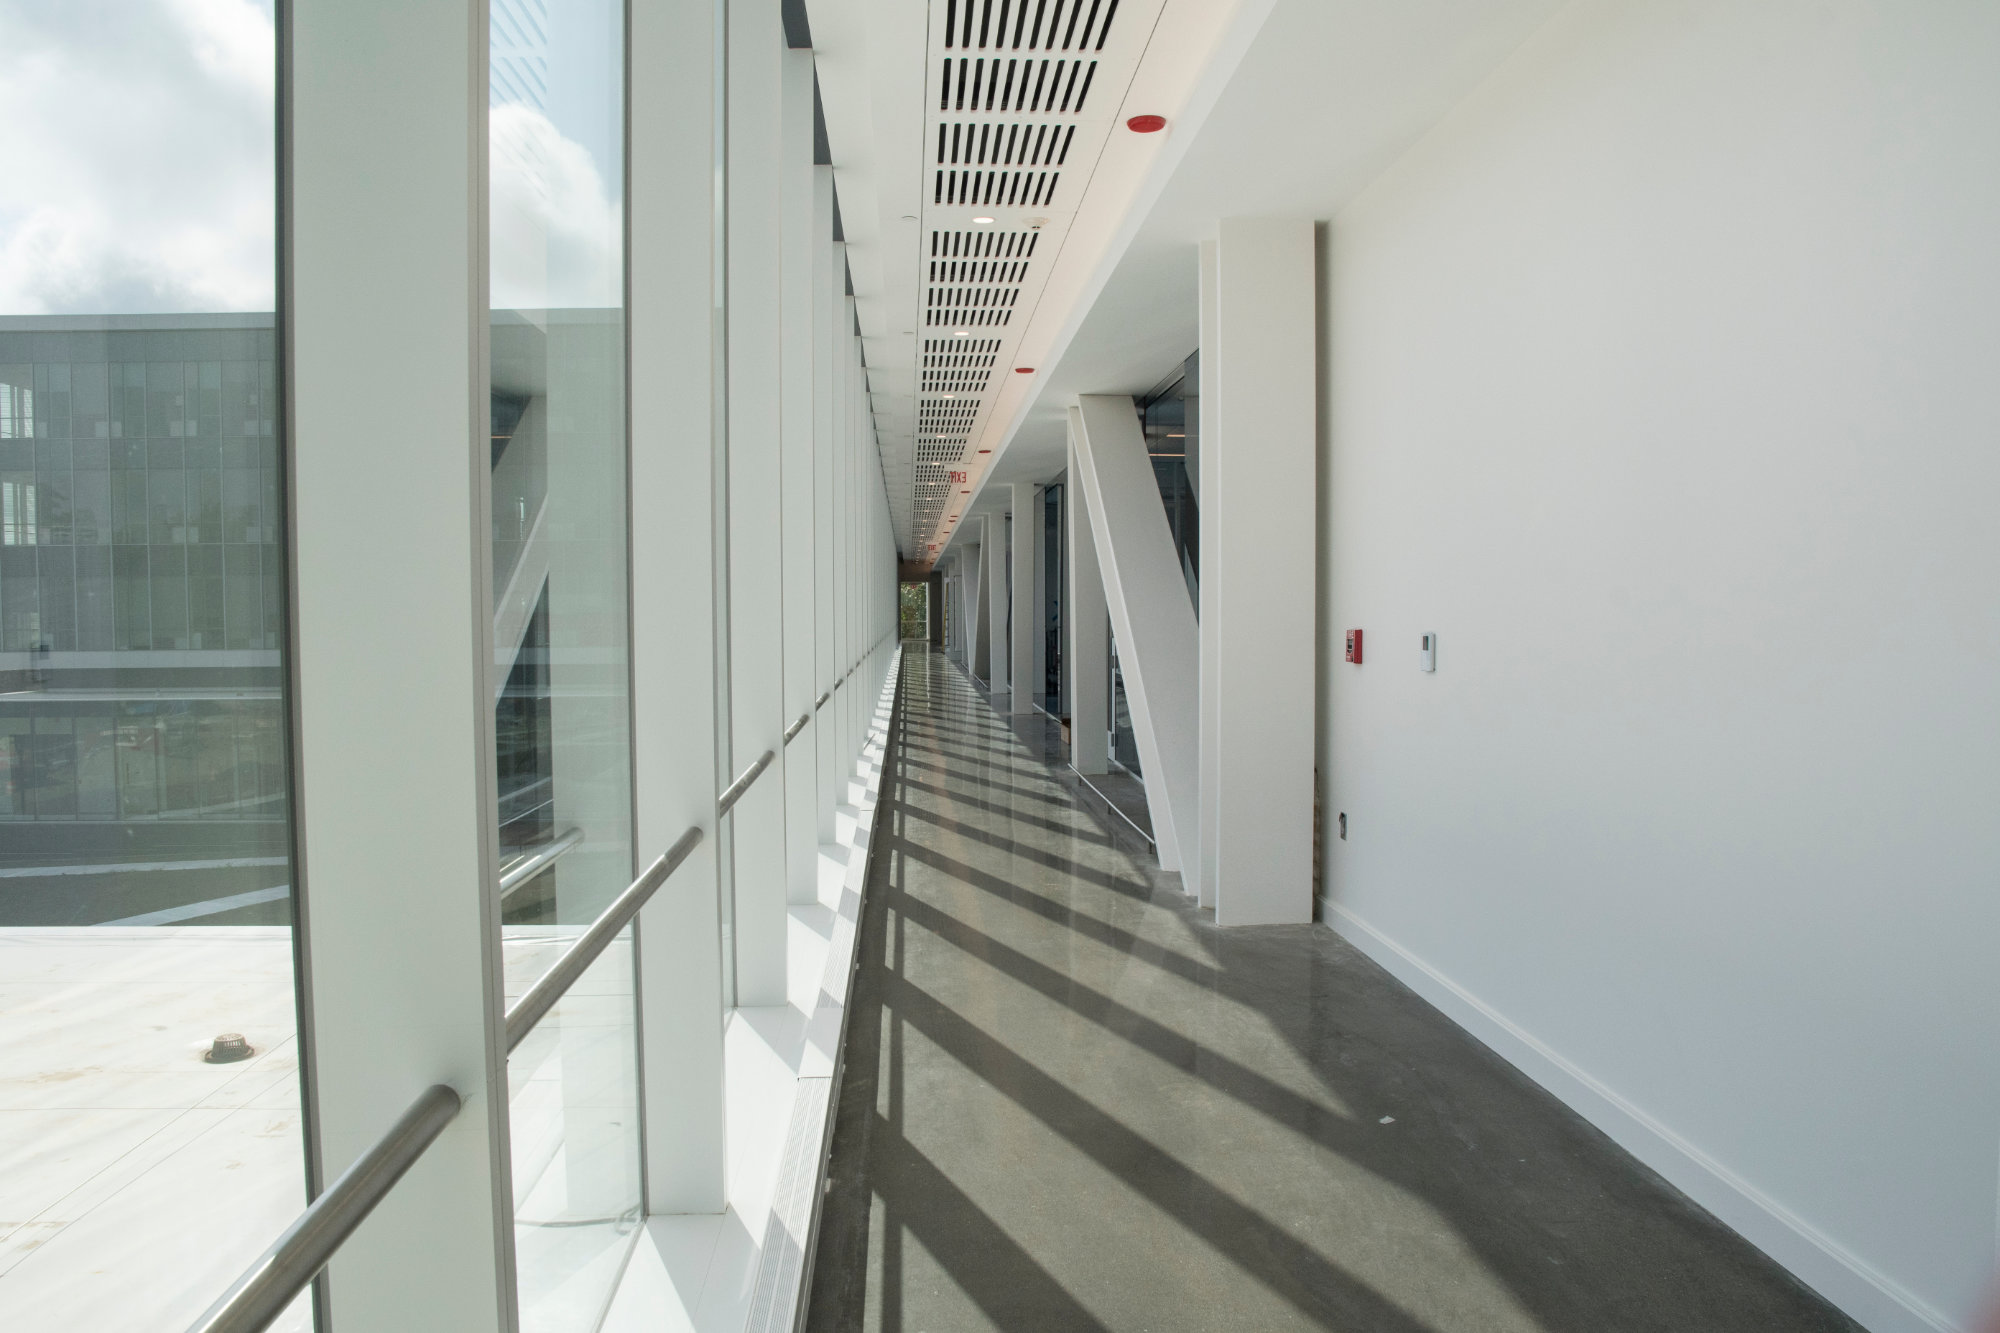 A bright open corridor on the fourth floor shows the building's metal truss support system.